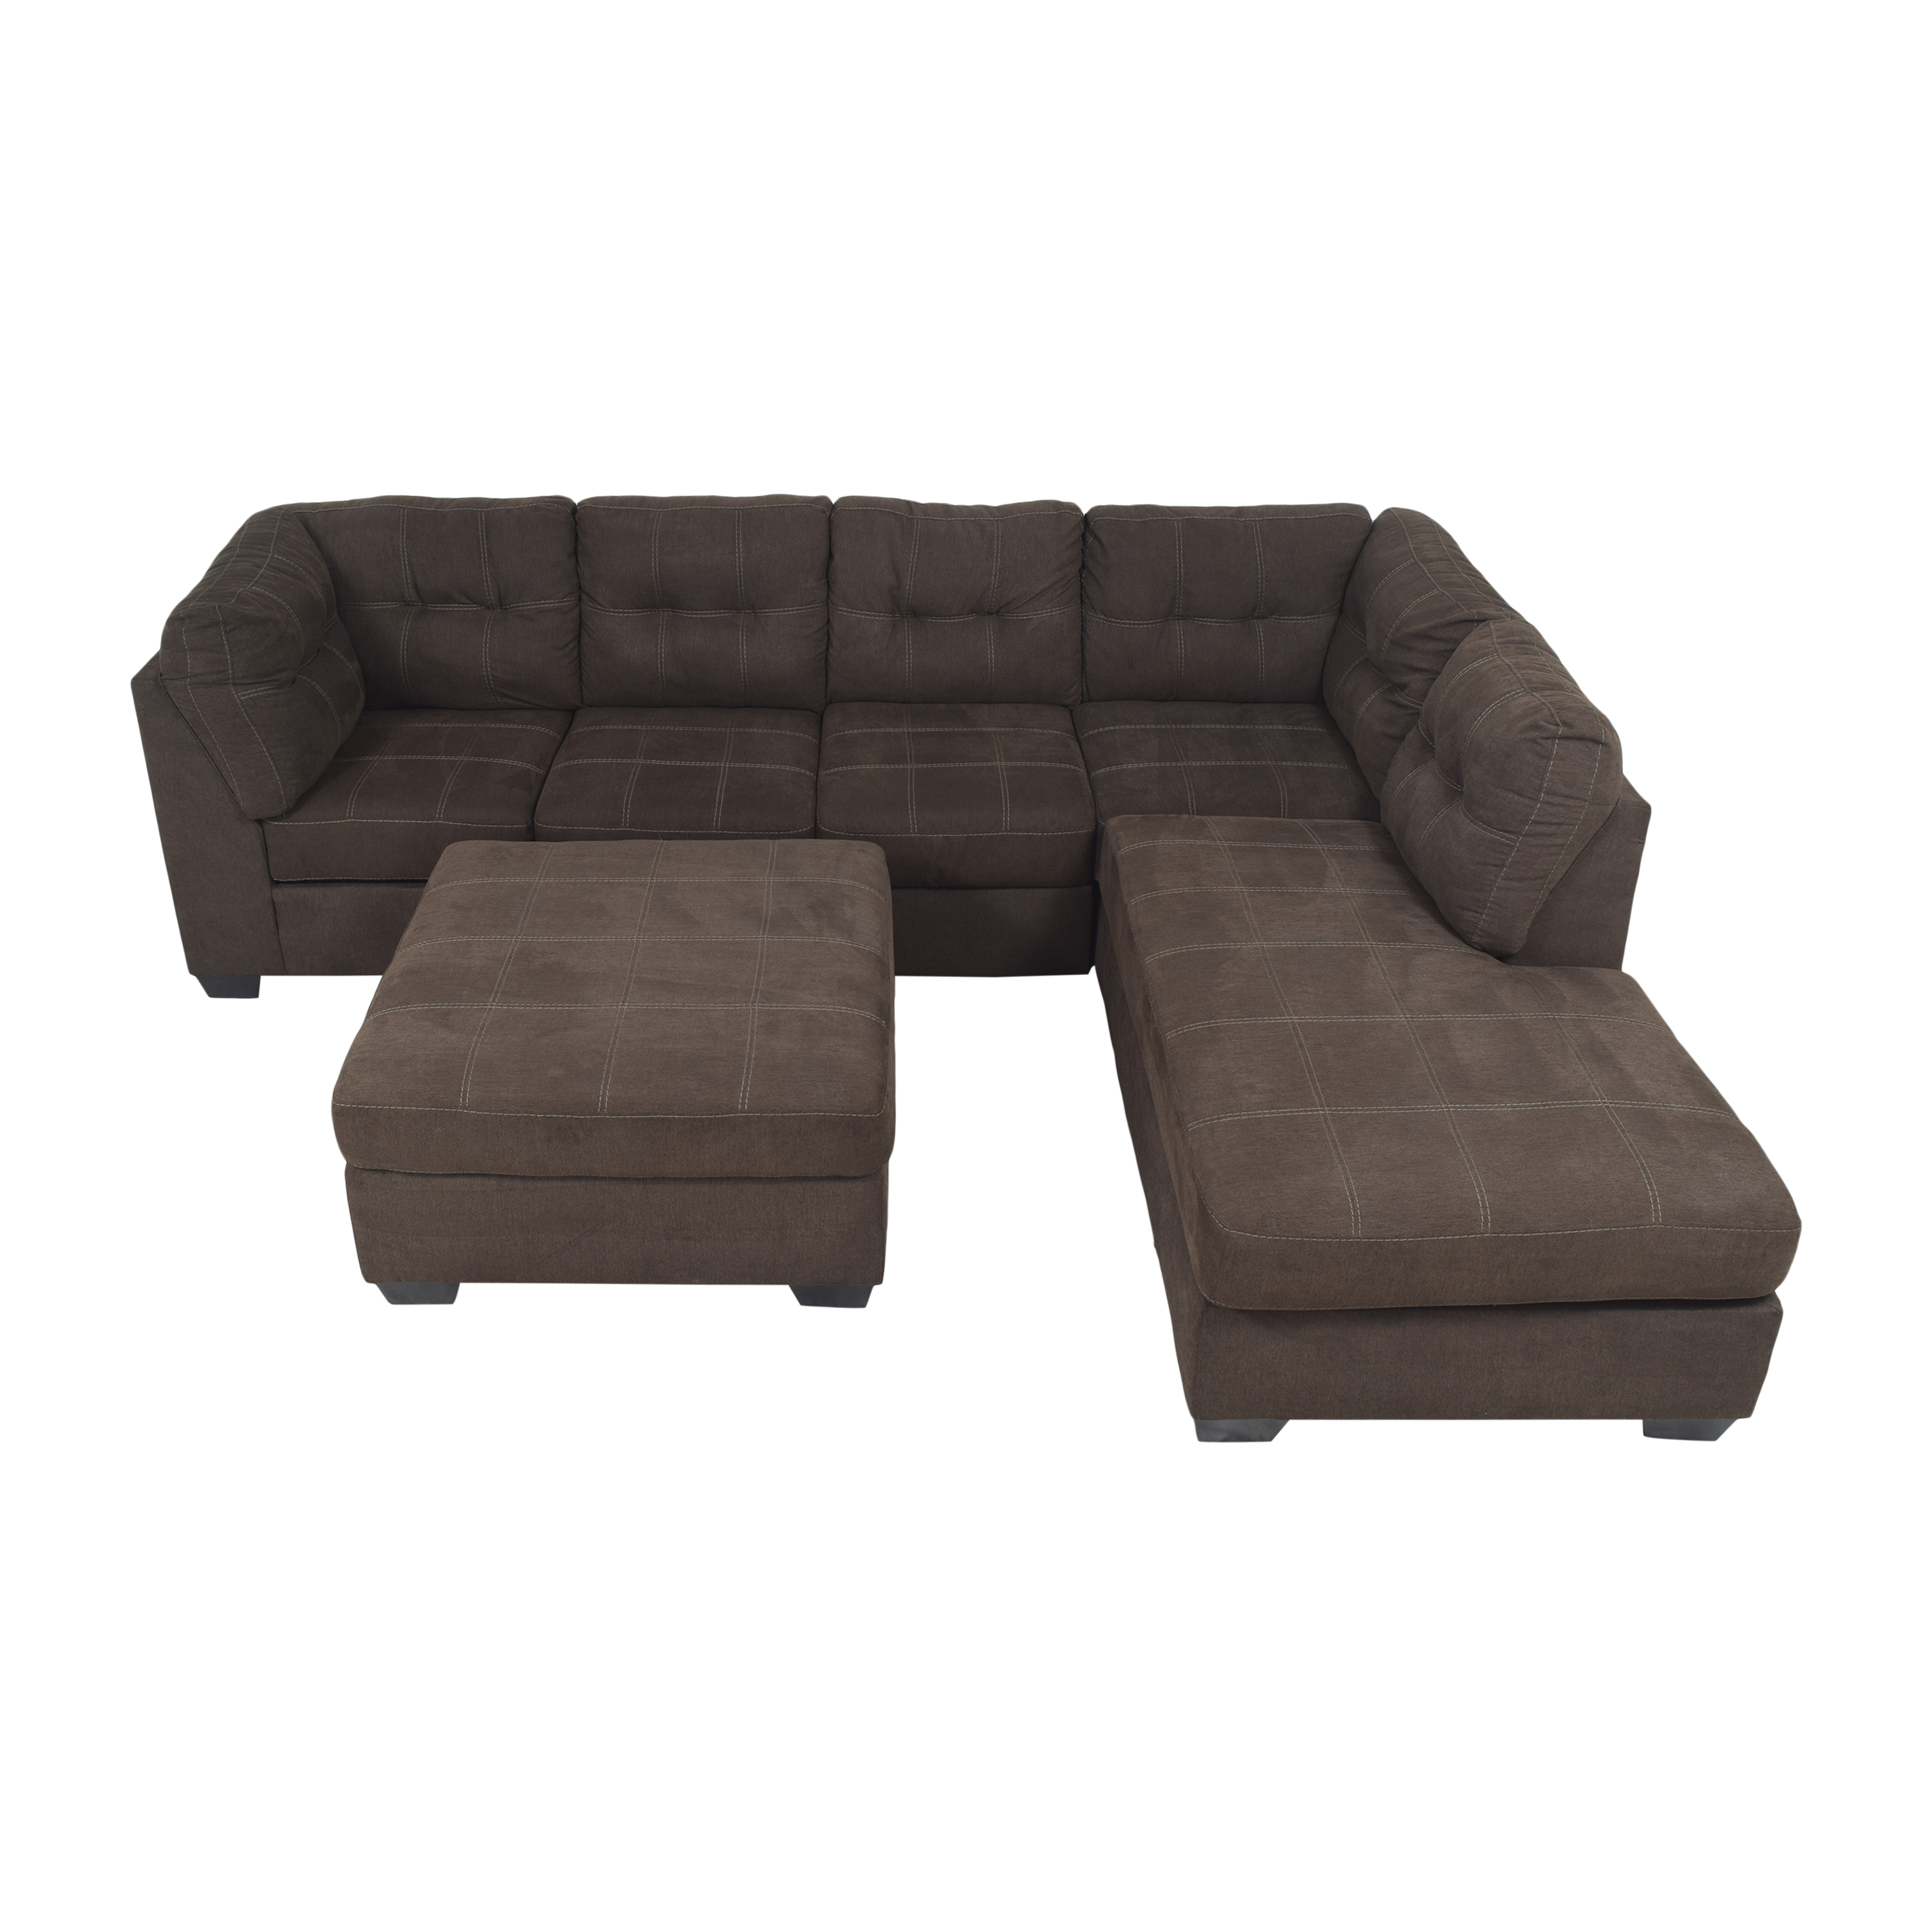 Ashley Furniture Pitkin Two-Piece Chaise Sectional with Ottoman sale